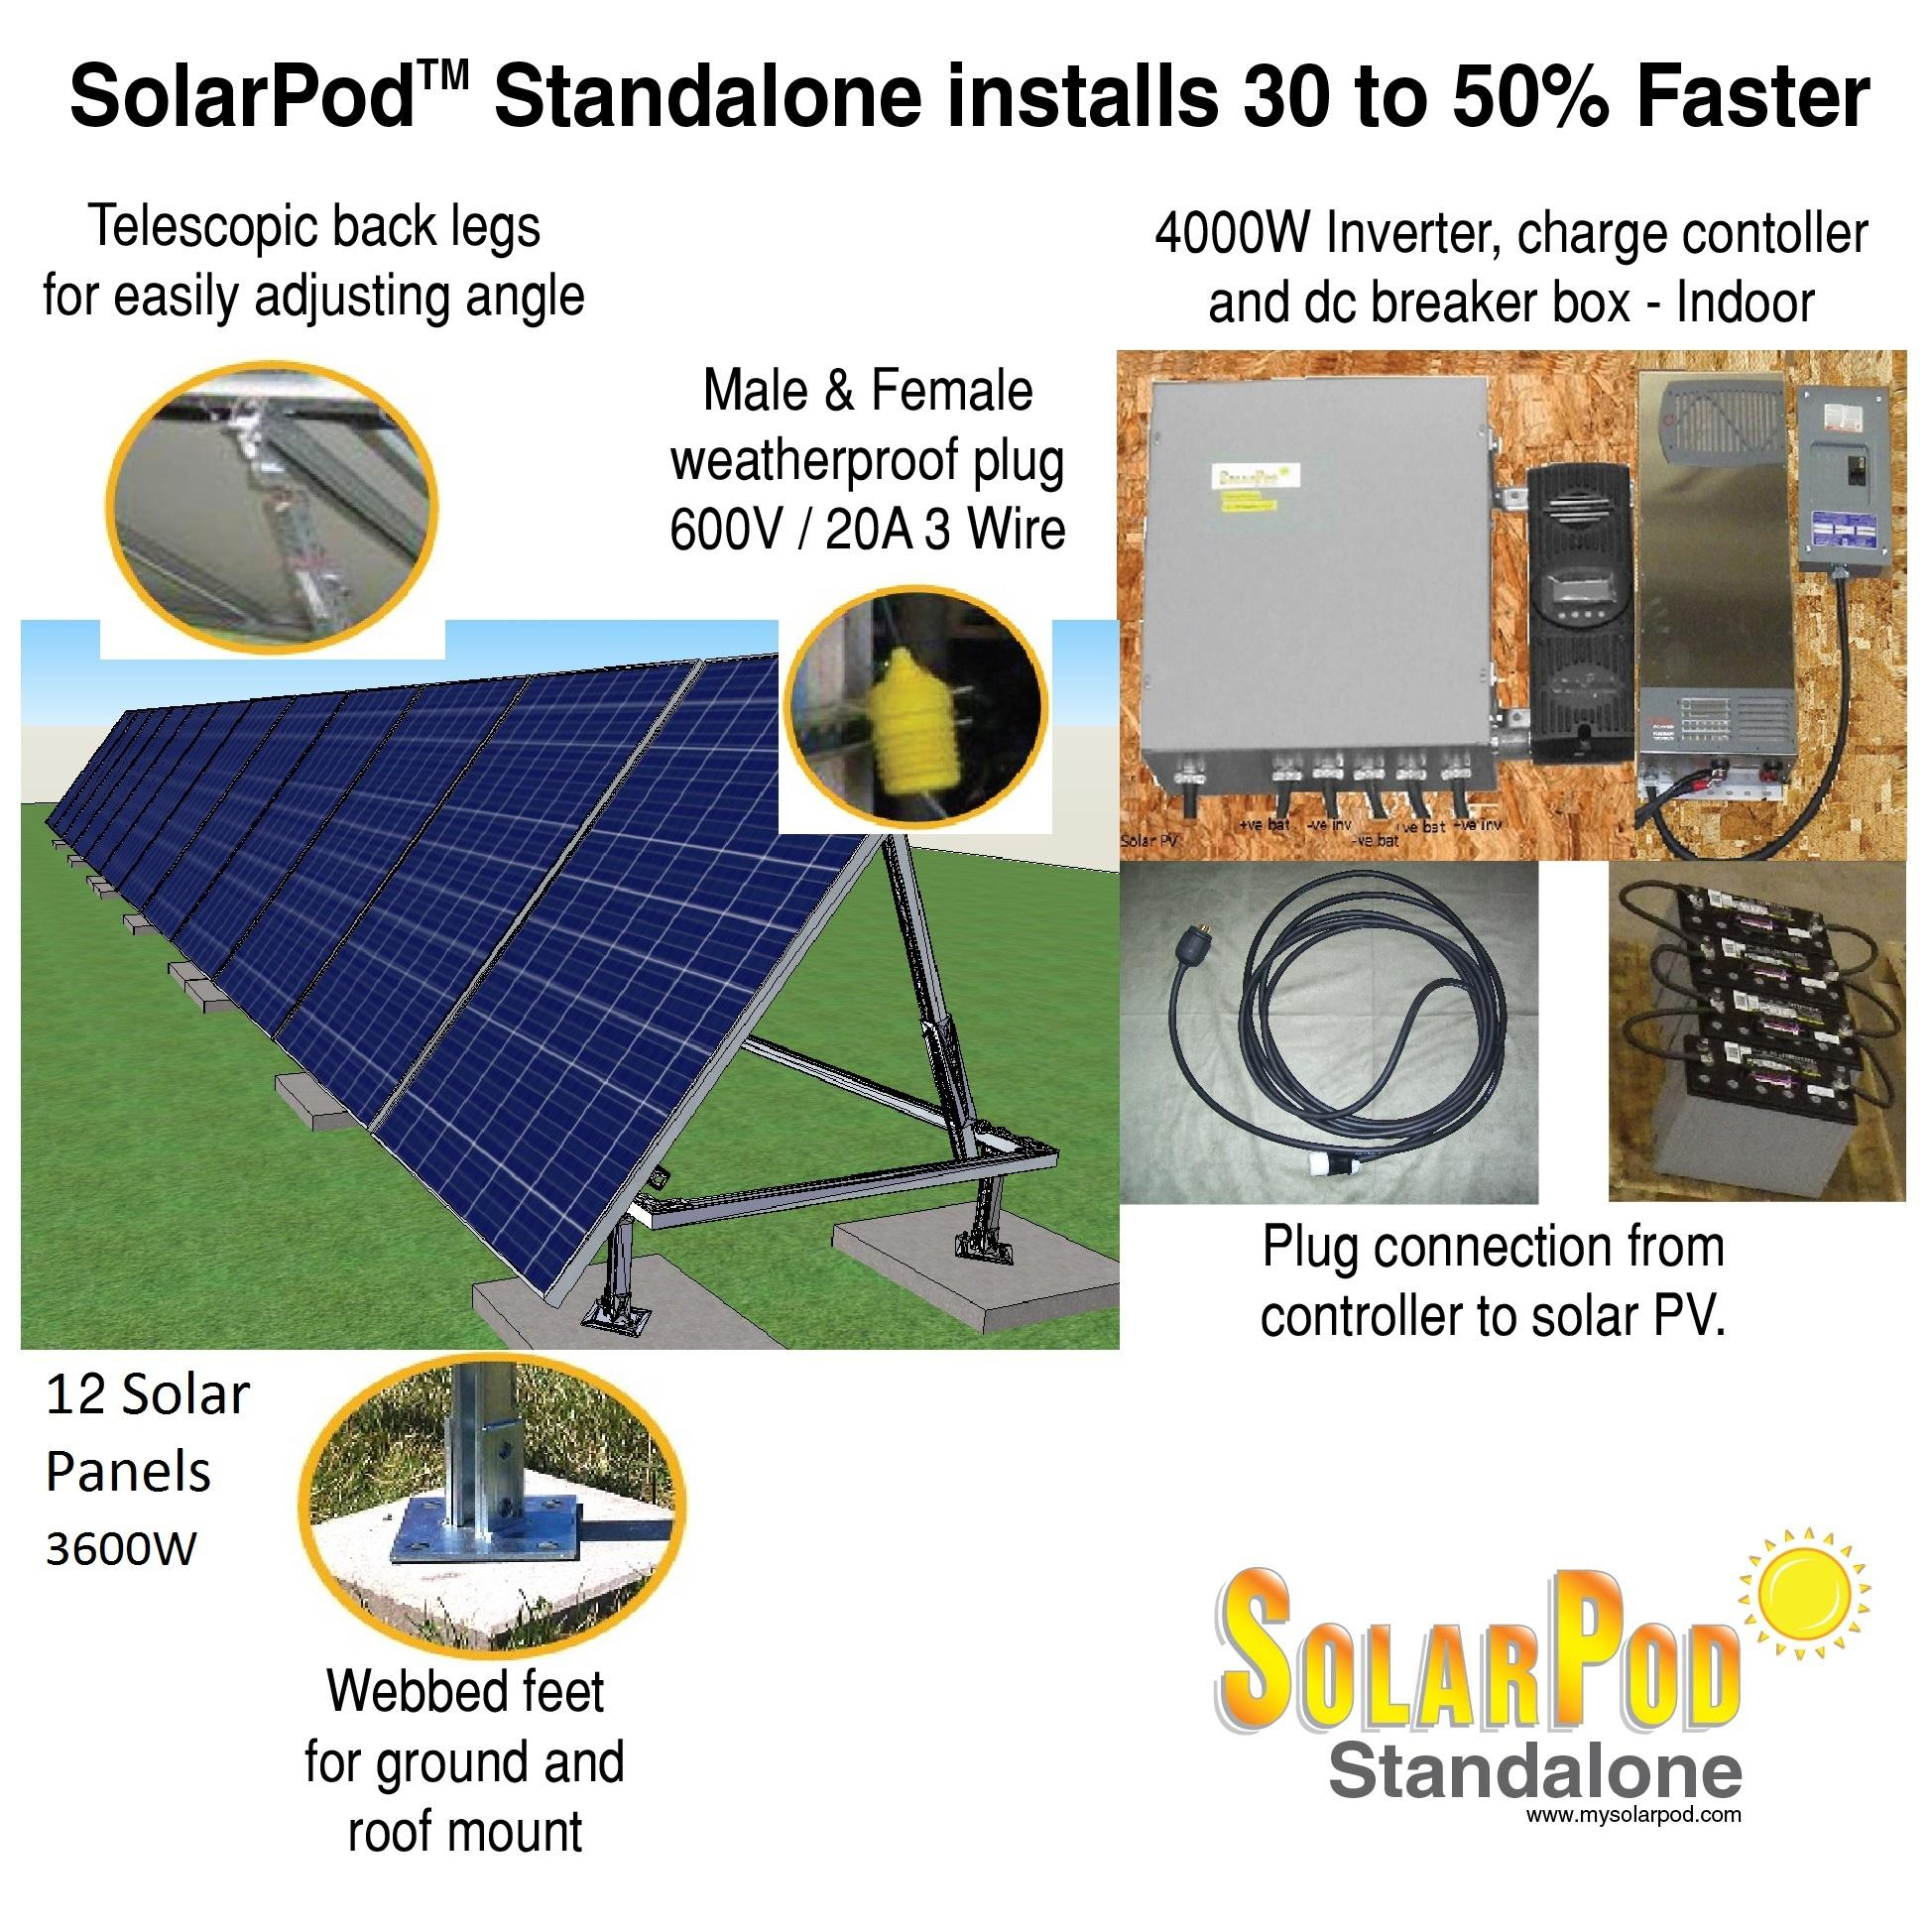 MODEL #1007 SolarPod Standalone – 4kW ON & Off-Grid Hybrid on off grid solar system installation guide, solar controller wiring diagram, cabin off-grid solar diagram, solar battery charger wiring diagram, residential solar panel basic configuration diagram, solar cell wiring diagram, solar inverter wiring diagram, supervent series commercial pv installation diagram, solar pv wiring diagram, power off grid diagram, solar power wiring diagram, off grid solar system assembly,